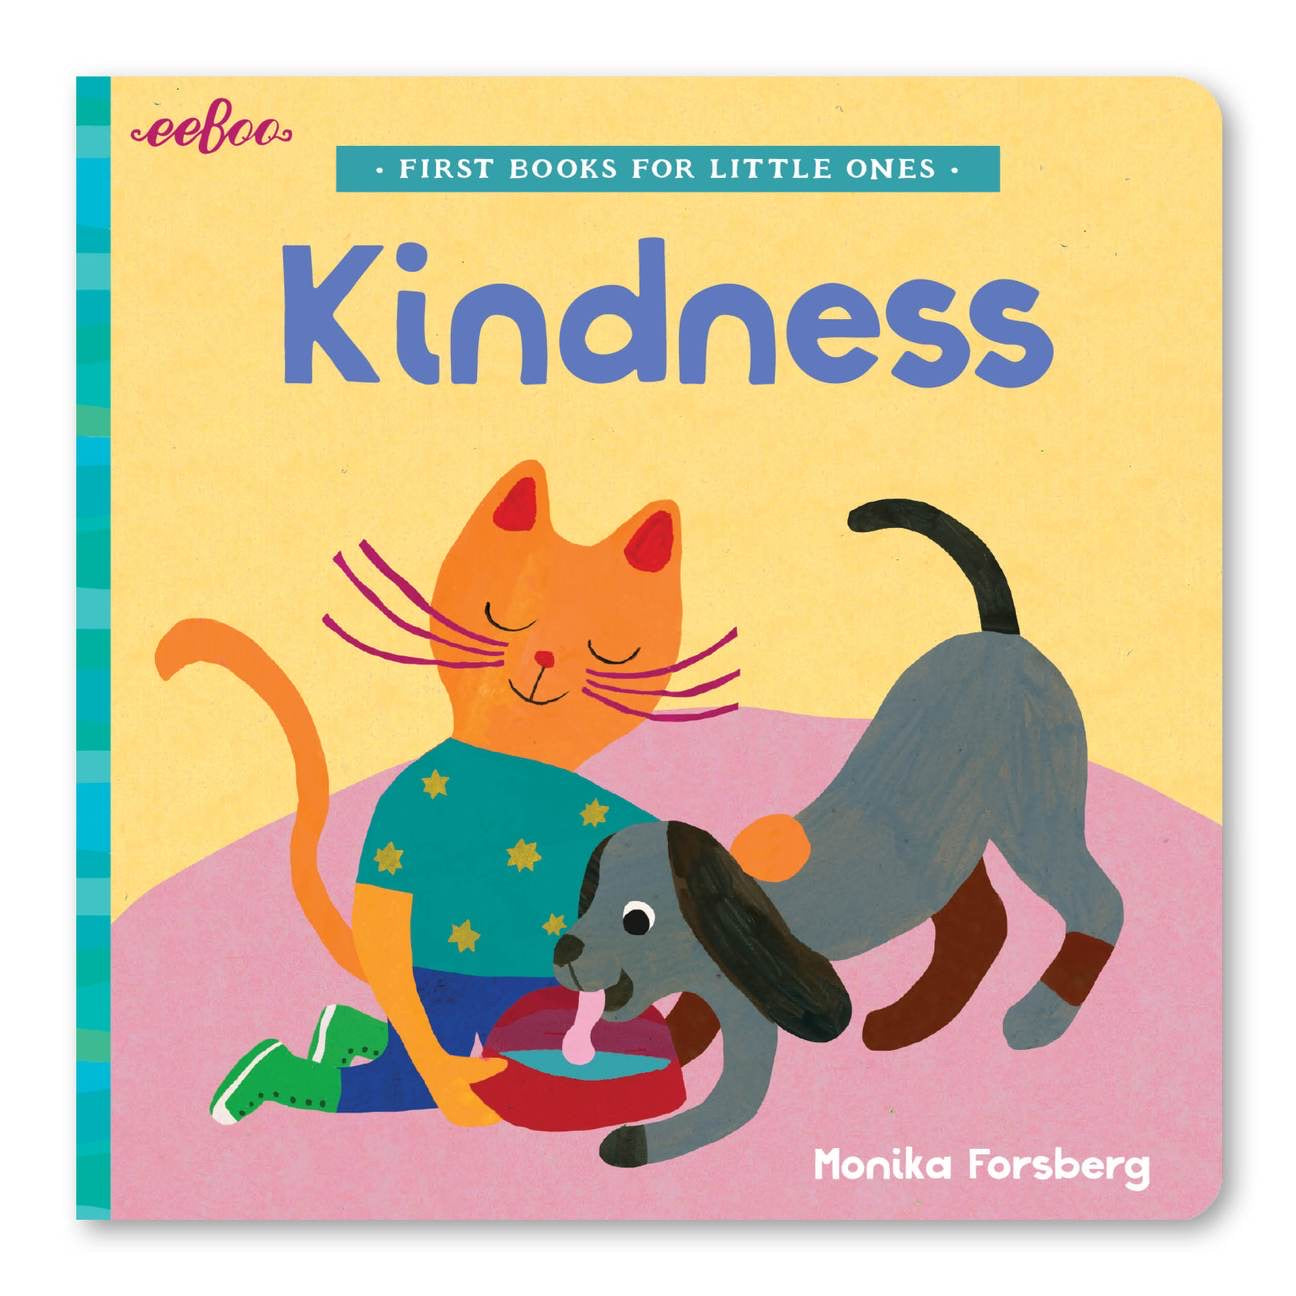 Eeboo - First Books for Little Ones Kindness